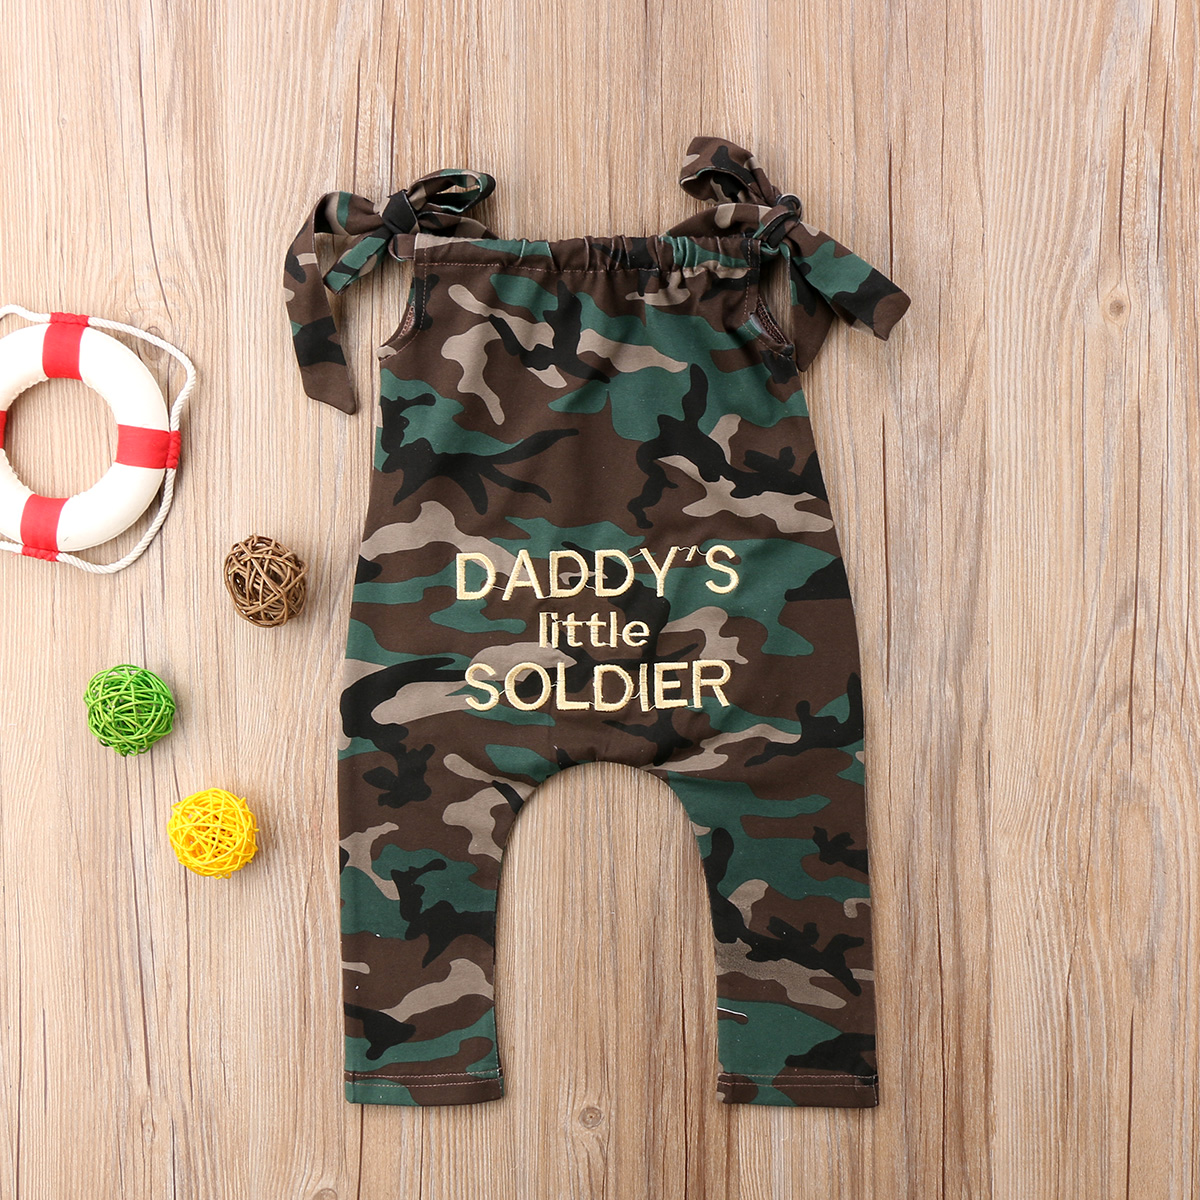 ba4b56ccc83 Aliexpress.com   Buy Newborn Kid Baby Girl Toddler Camouflage Romper  Jumpers Clothes Outfits Playsuit Army Green Letter Print Strap from  Reliable Clothing ...